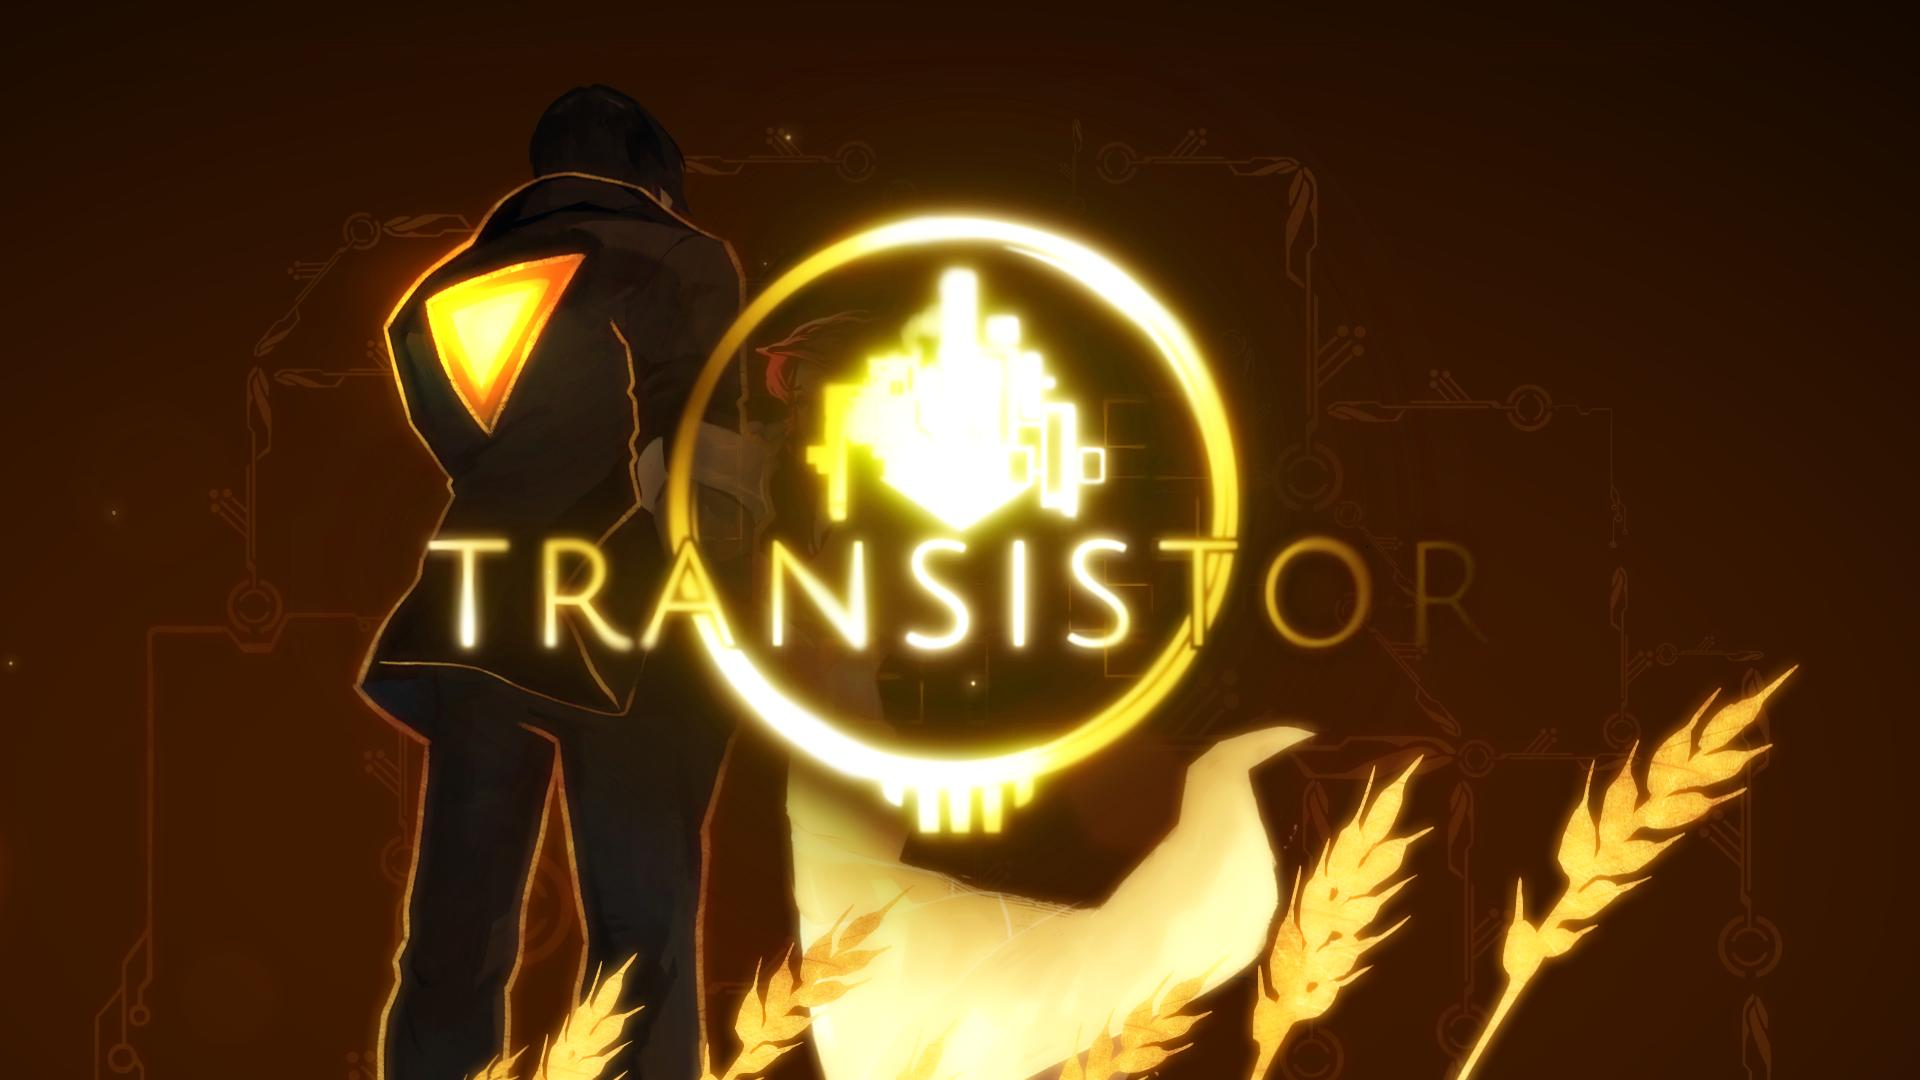 Full 100% Quality HD Pictures: Transistor, 1920x1080